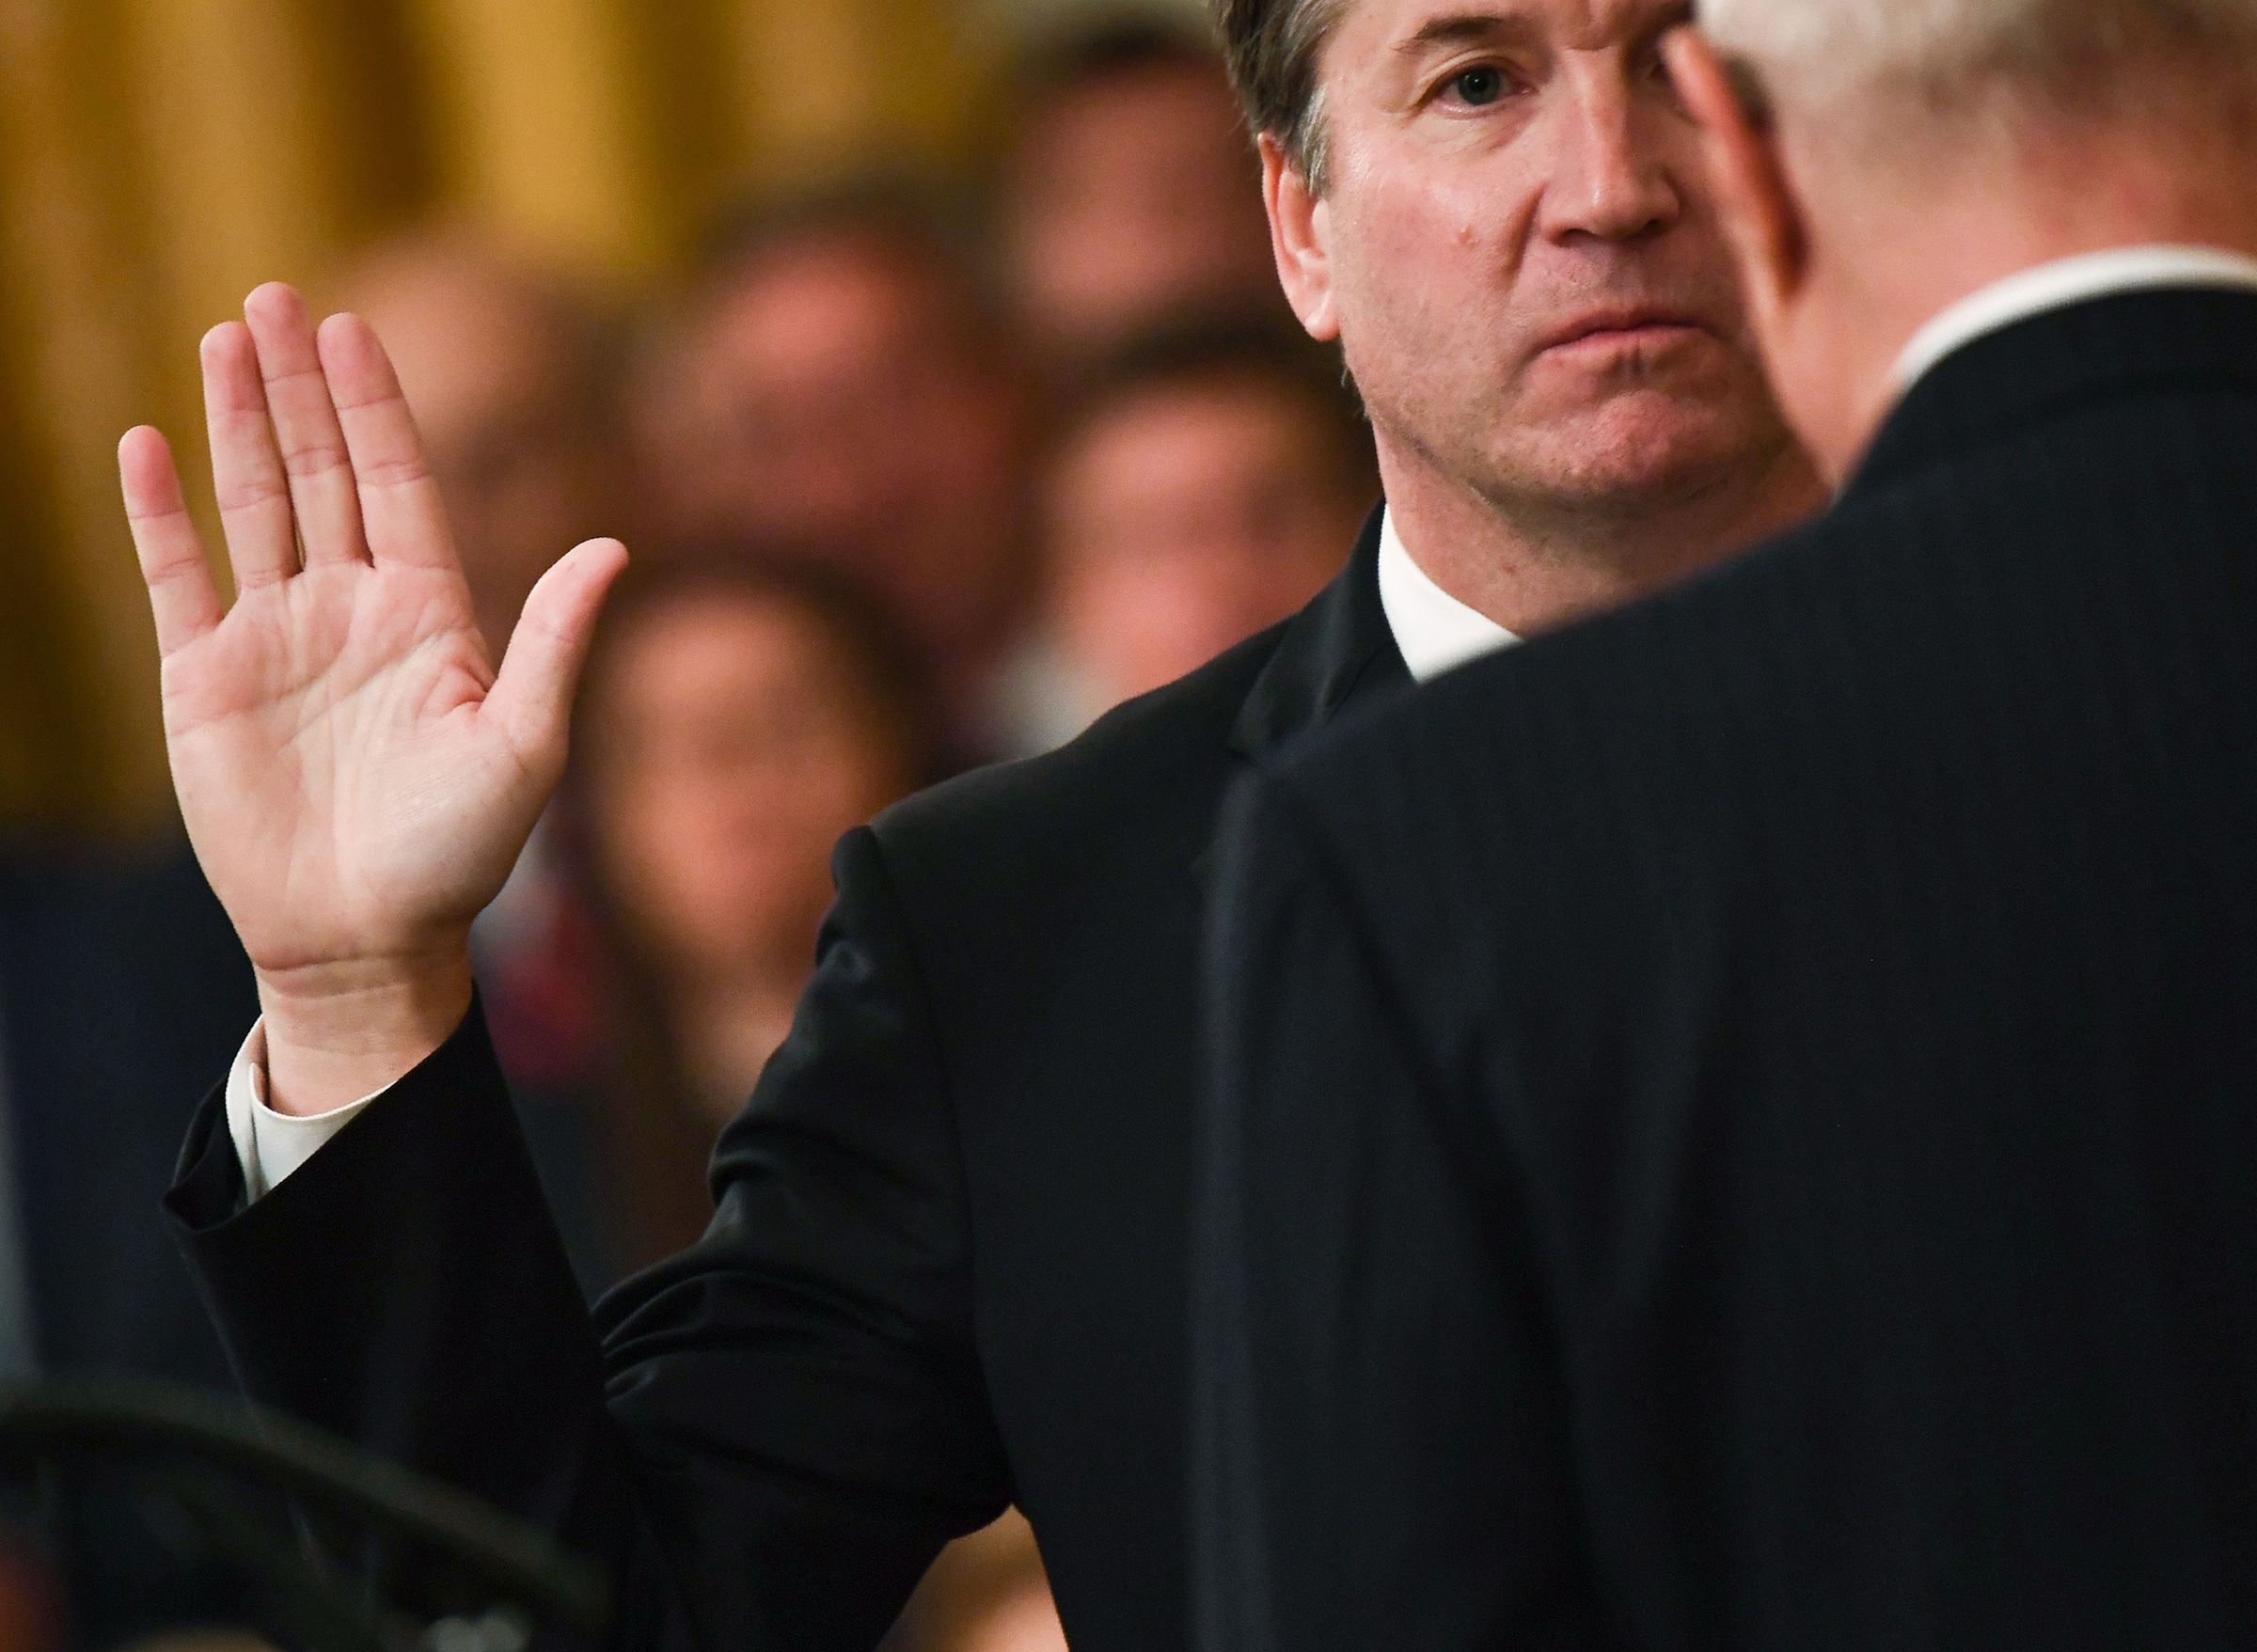 Brett Kavanaugh (L) is sworn-in as Associate Justice of the US Supreme Court by retired Associate Justice Anthony Kennedy at the White House in Washington, DC October 8, 2018.